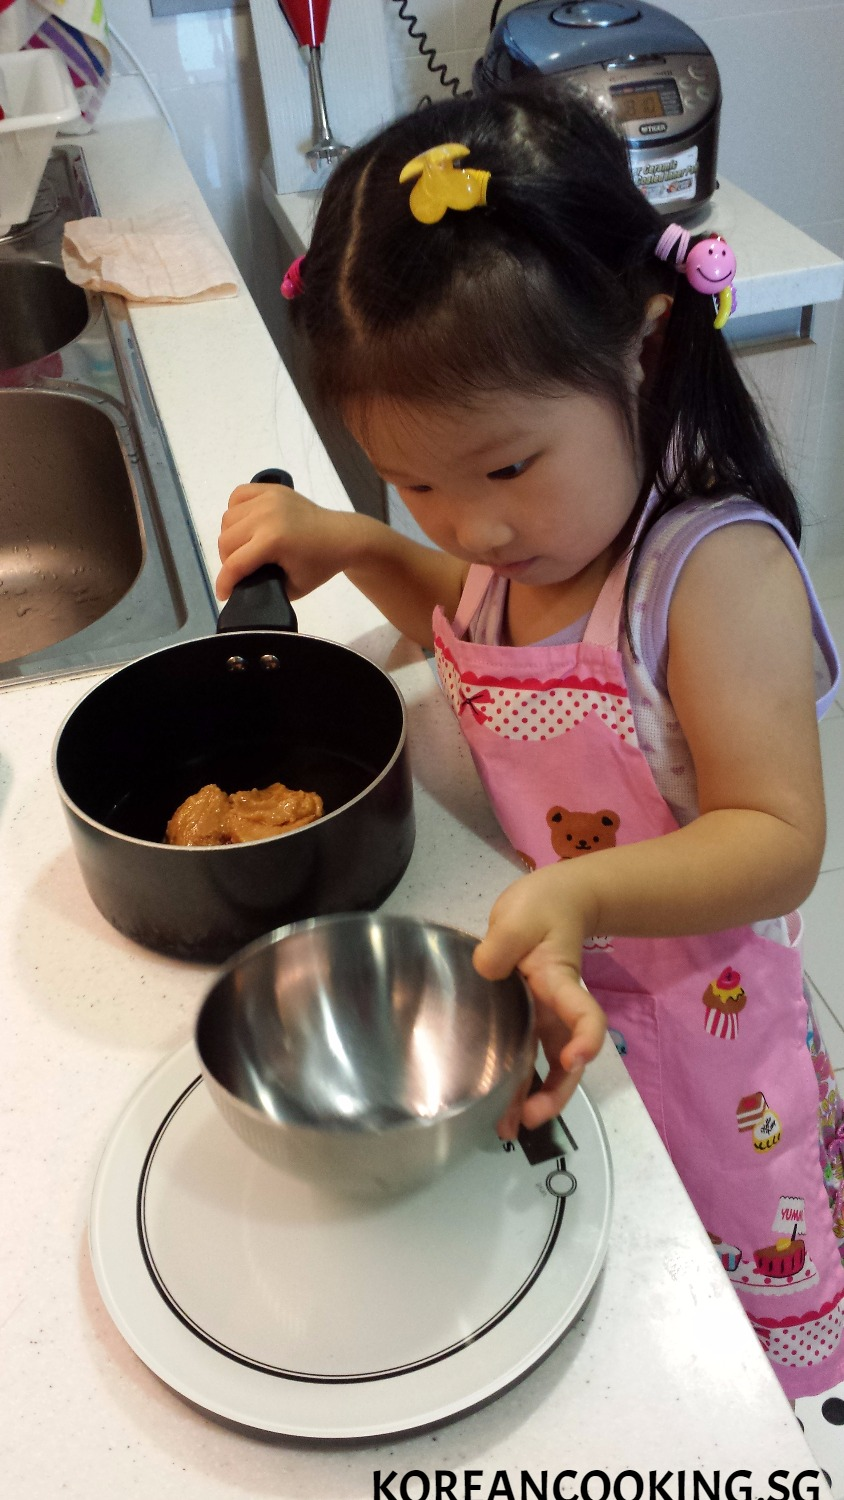 MY DAUGHTER HAS STARTED COOKING WHEN SHE TURNED ONE:)